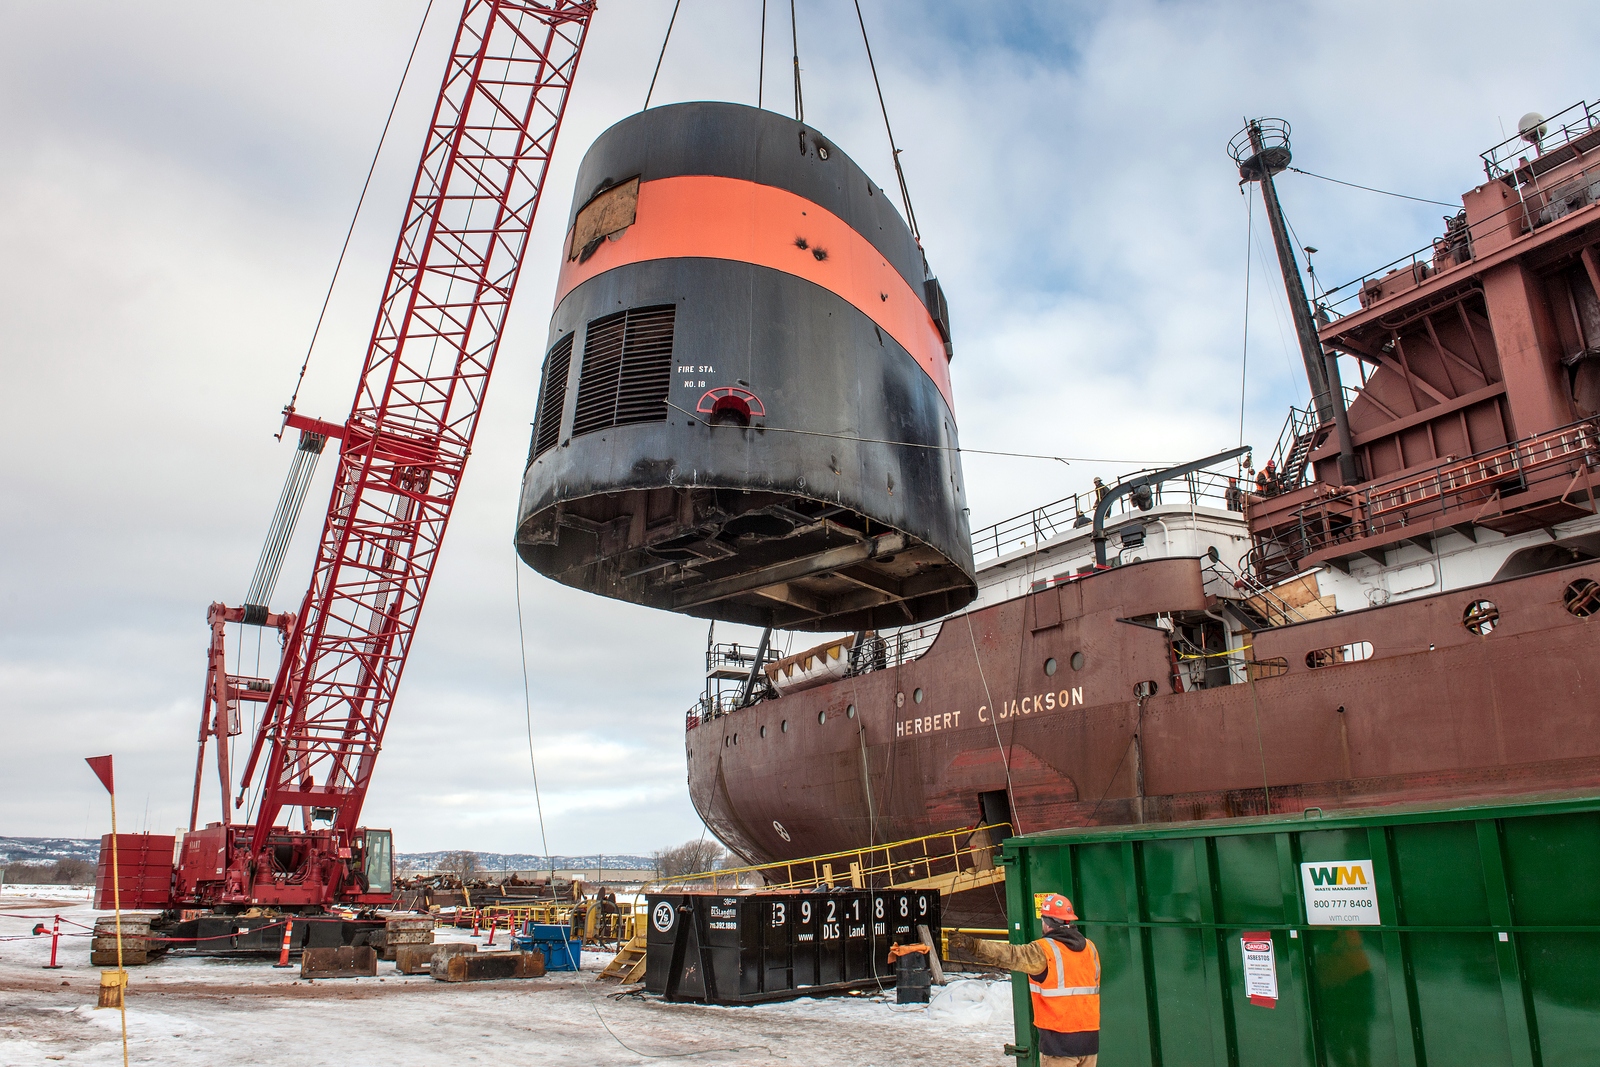 Fraser Shipyards has nearly 70 people dedicated to repowering the Herbert C. Jackson. Crews removed the ship's stack to extract the boilers and steam propulsion plant before being able to lower in two, new dual-fuel diesel engines later this month. Credit: Robert Welton